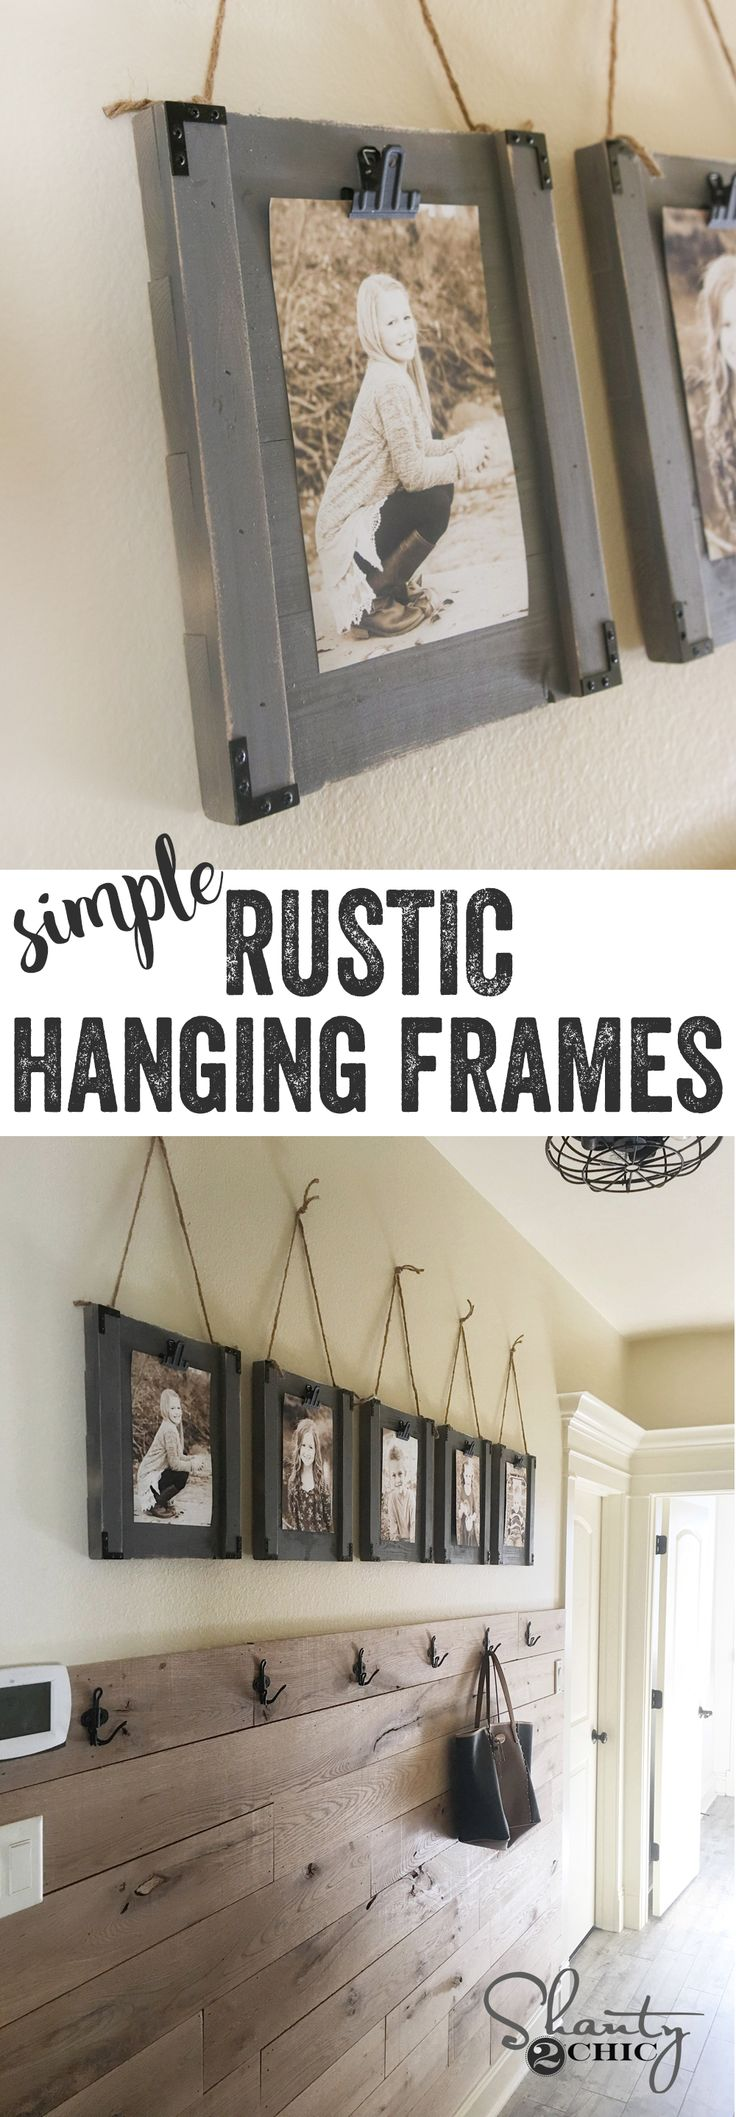 Rustic Wall Hangings best 25+ rustic wall decor ideas on pinterest | farmhouse wall